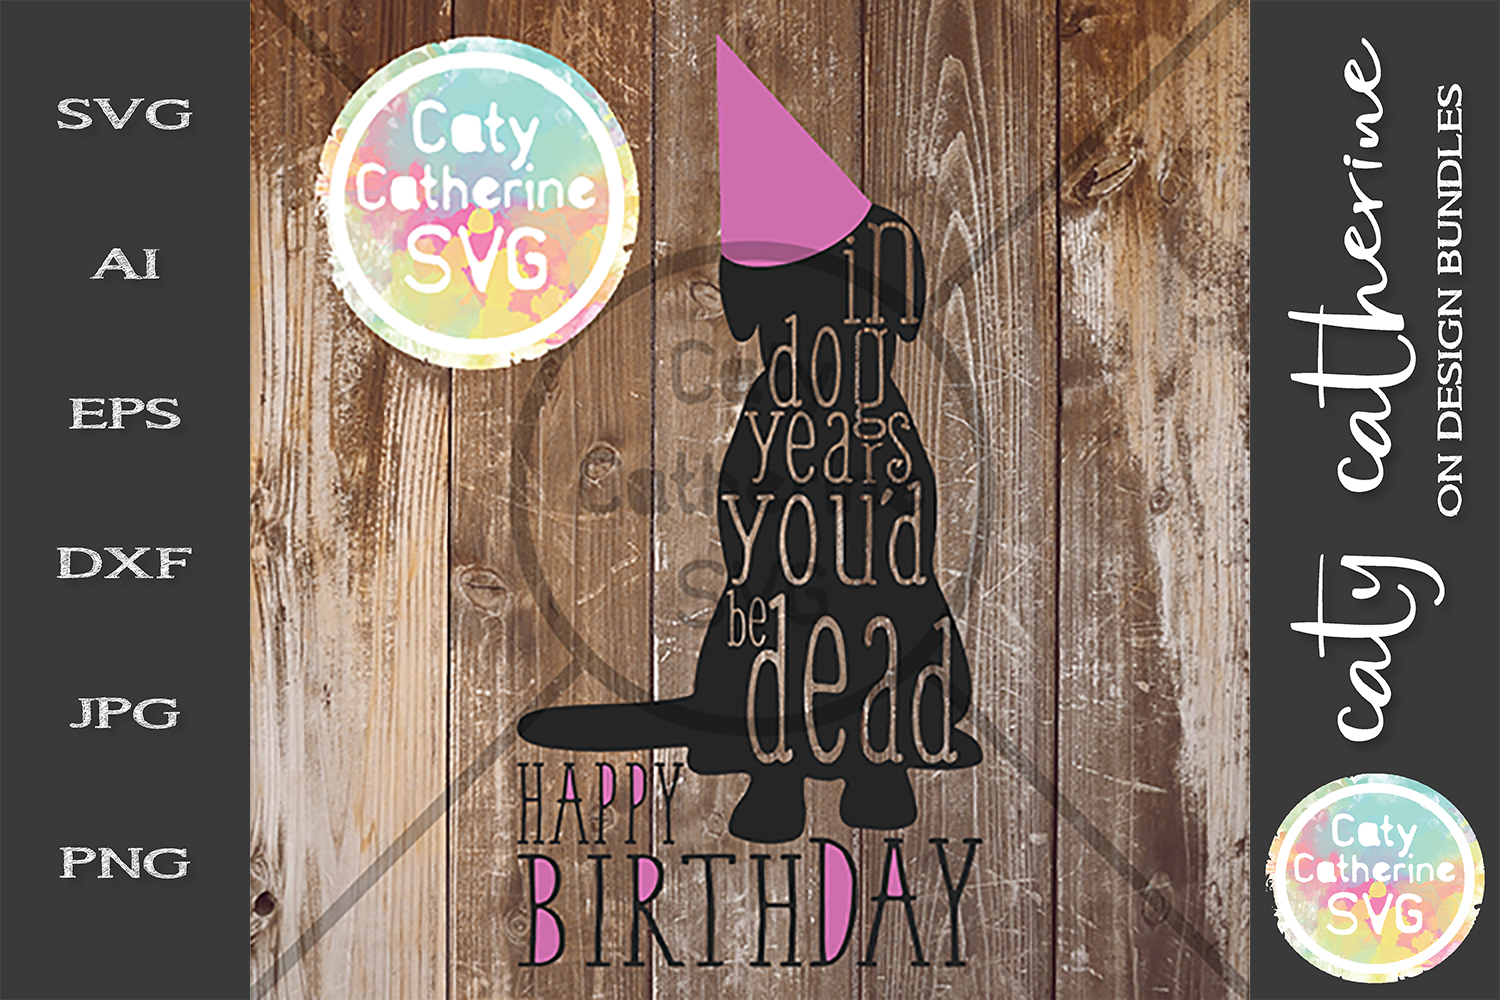 In Dog Years You'd Be Dead Happy Birthday SVG Cut File Funny example image 1